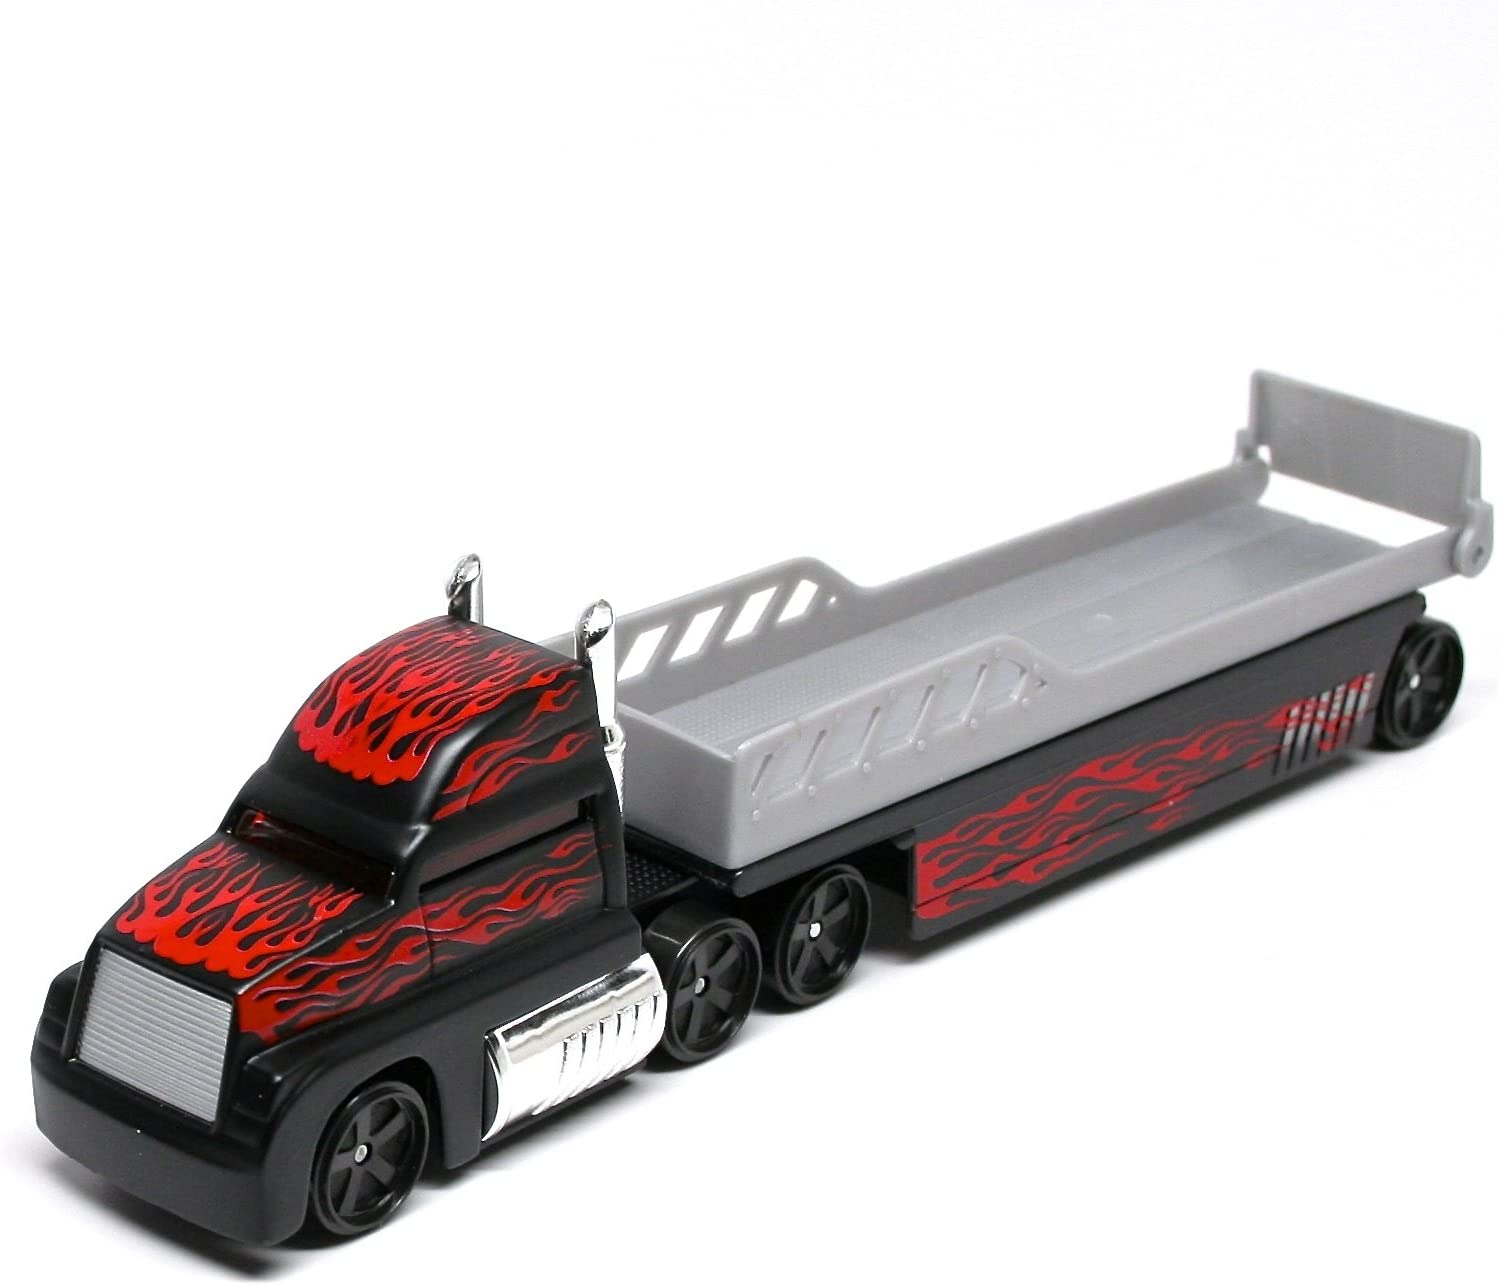 * On the Road Series Black w//Flames Semi Truck Vehicle Collection Auto Transport Flatbed Maisto Highway Haulers 2010 Fresh Metal Die-Cast Tractor Trailer